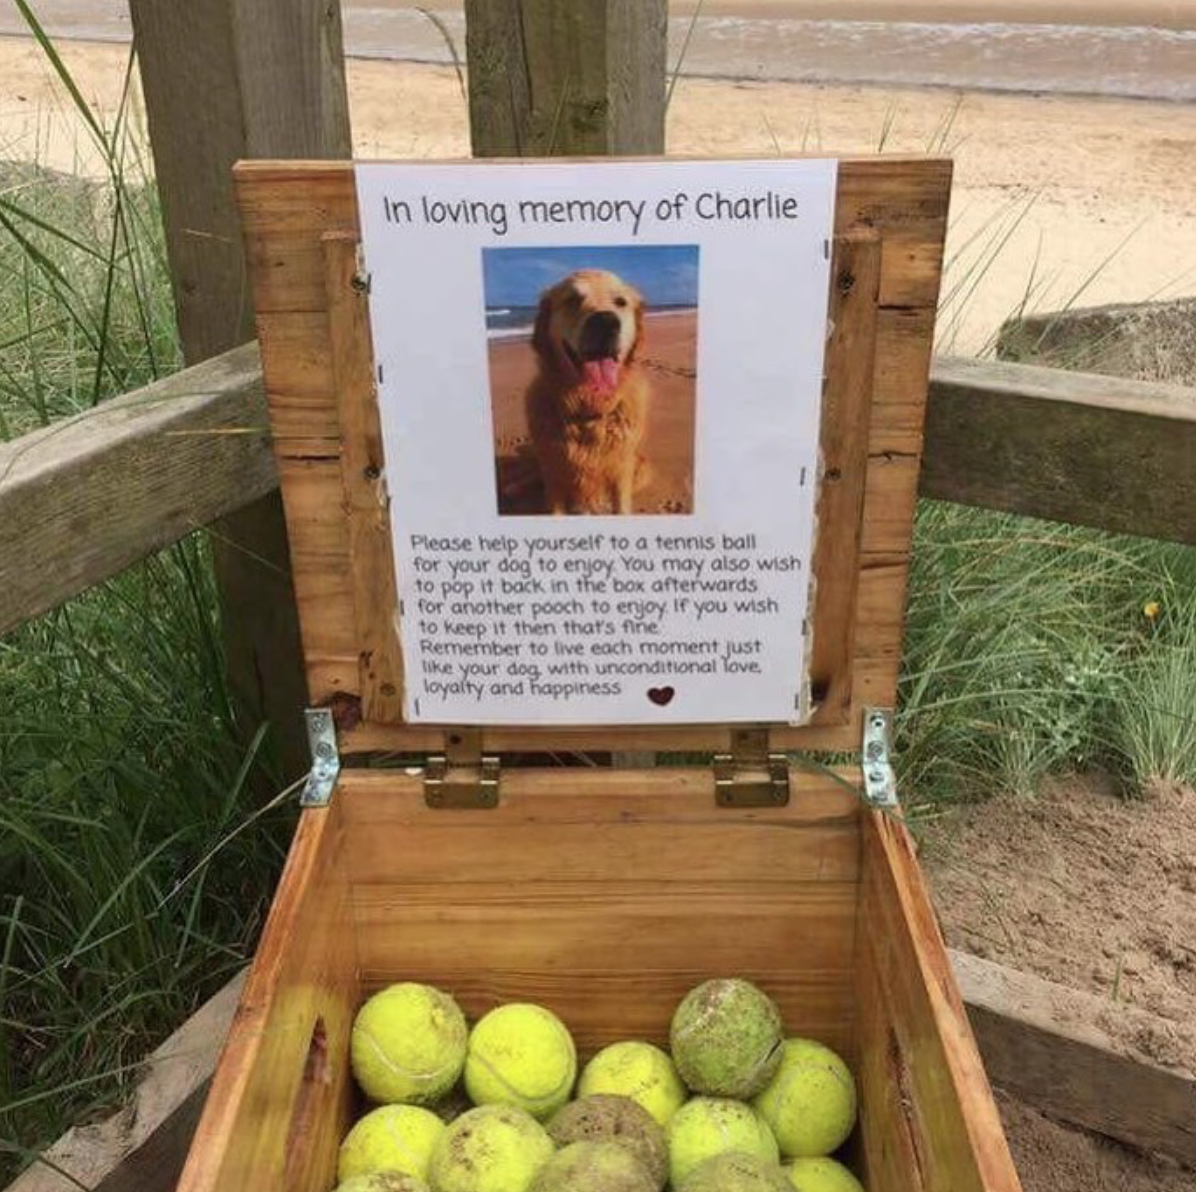 At a beach in Northumberland, England, you can borrow, take or give a tennis ball for doggos to play... - #babyanimalgifs #balls #beach #dogs #northumberland #photo #tennis